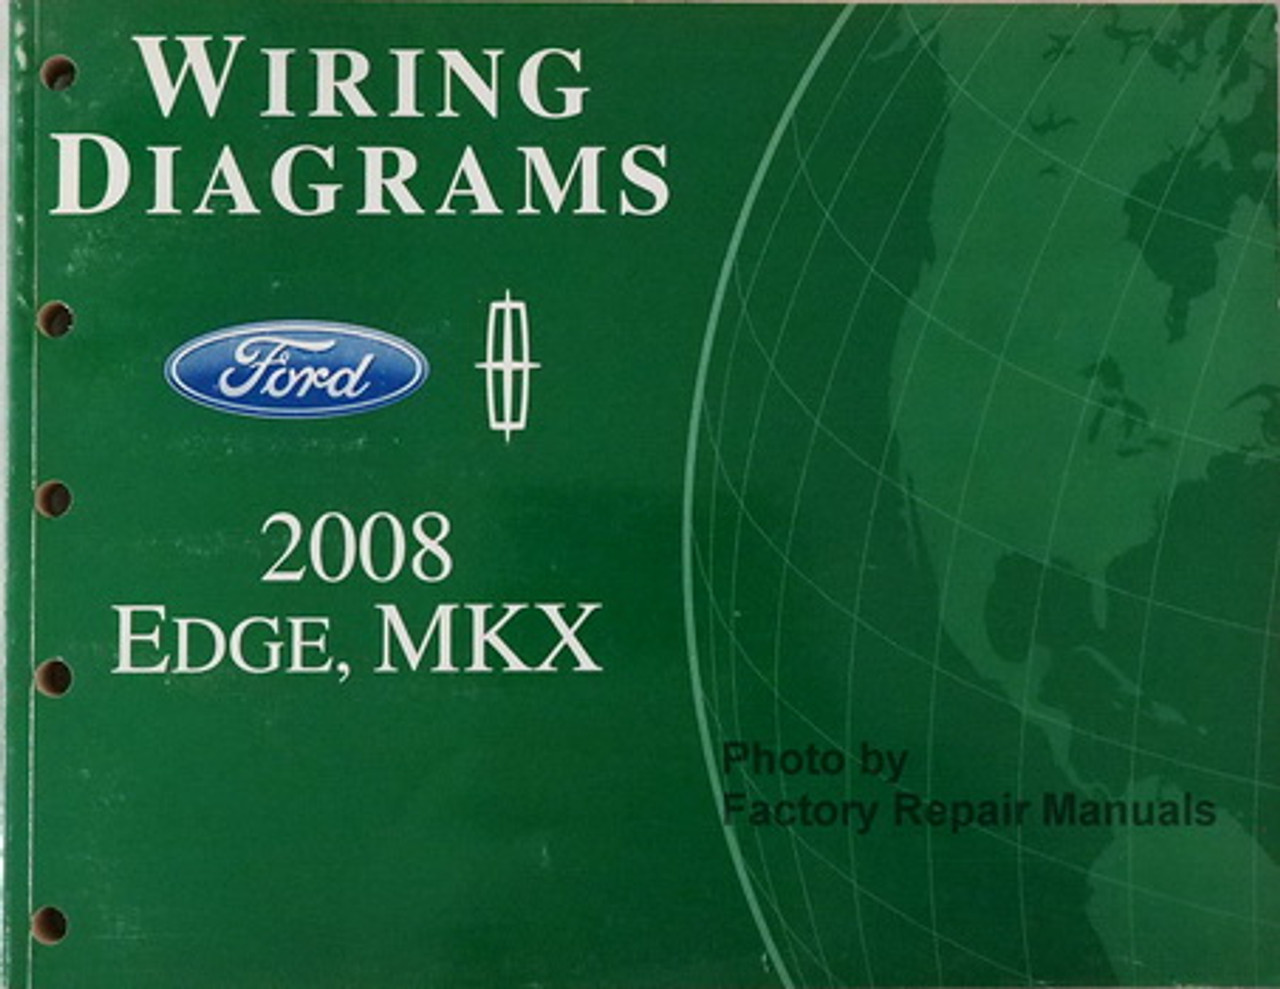 wiring diagram for 2008 ford edge 2008 ford edge and lincoln mkx electrical wiring diagrams  2008 ford edge and lincoln mkx